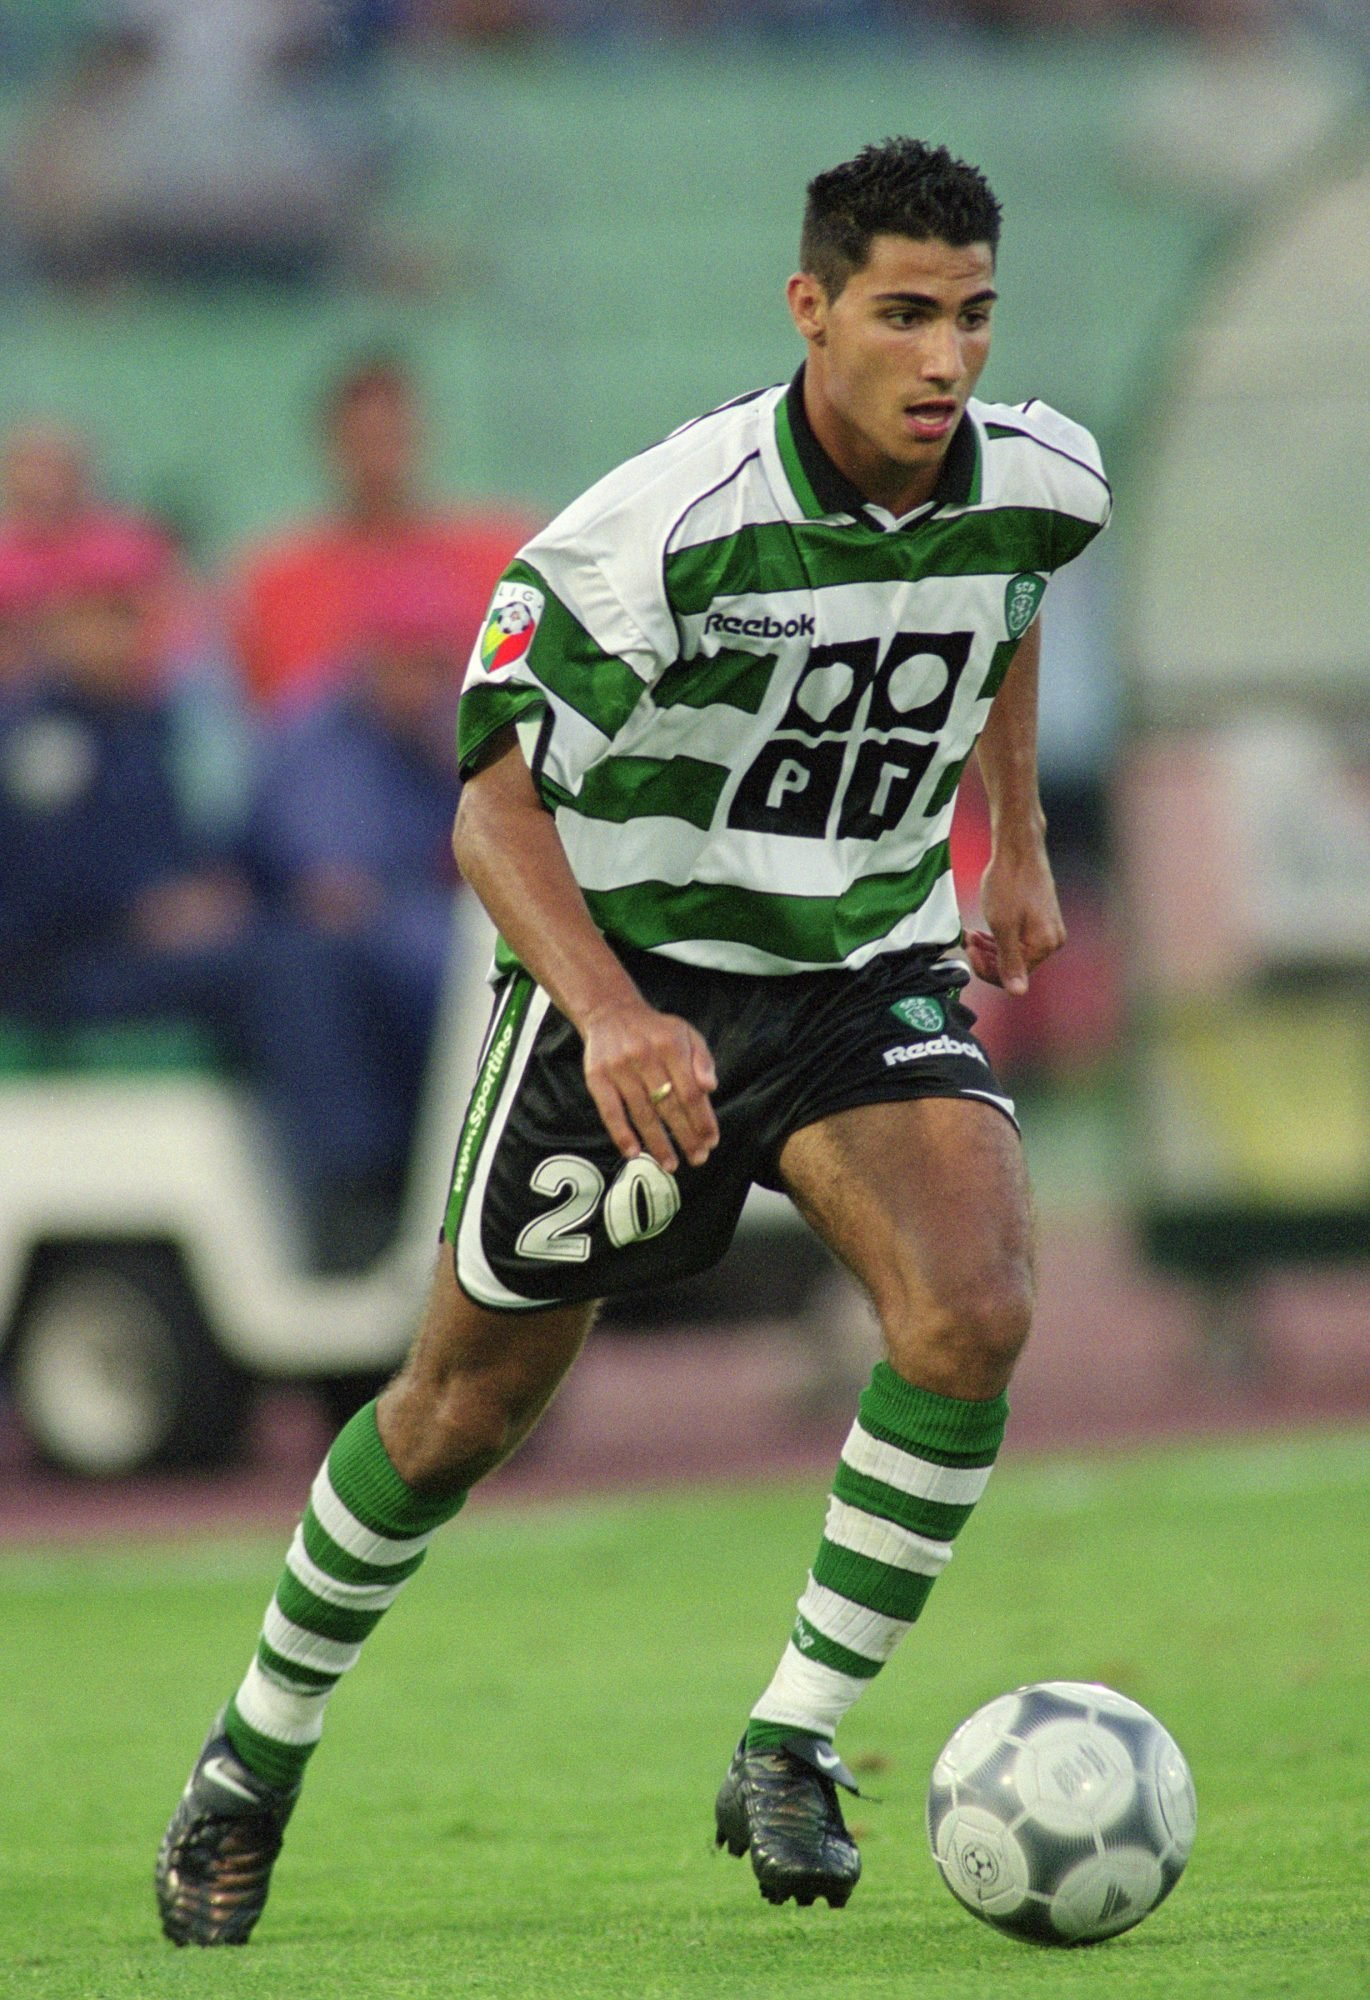 12 Aug 2001: Quaresma of Sporting Lisbon runs with the ball during the Portuguese League match against FC Porto played at the Estadio das Antas, in Porto, Portugal. Sporting Lisbon won the match 1-0. Picture taken by Nuno Correia Mandatory Credit: AllsportUK /Allsport